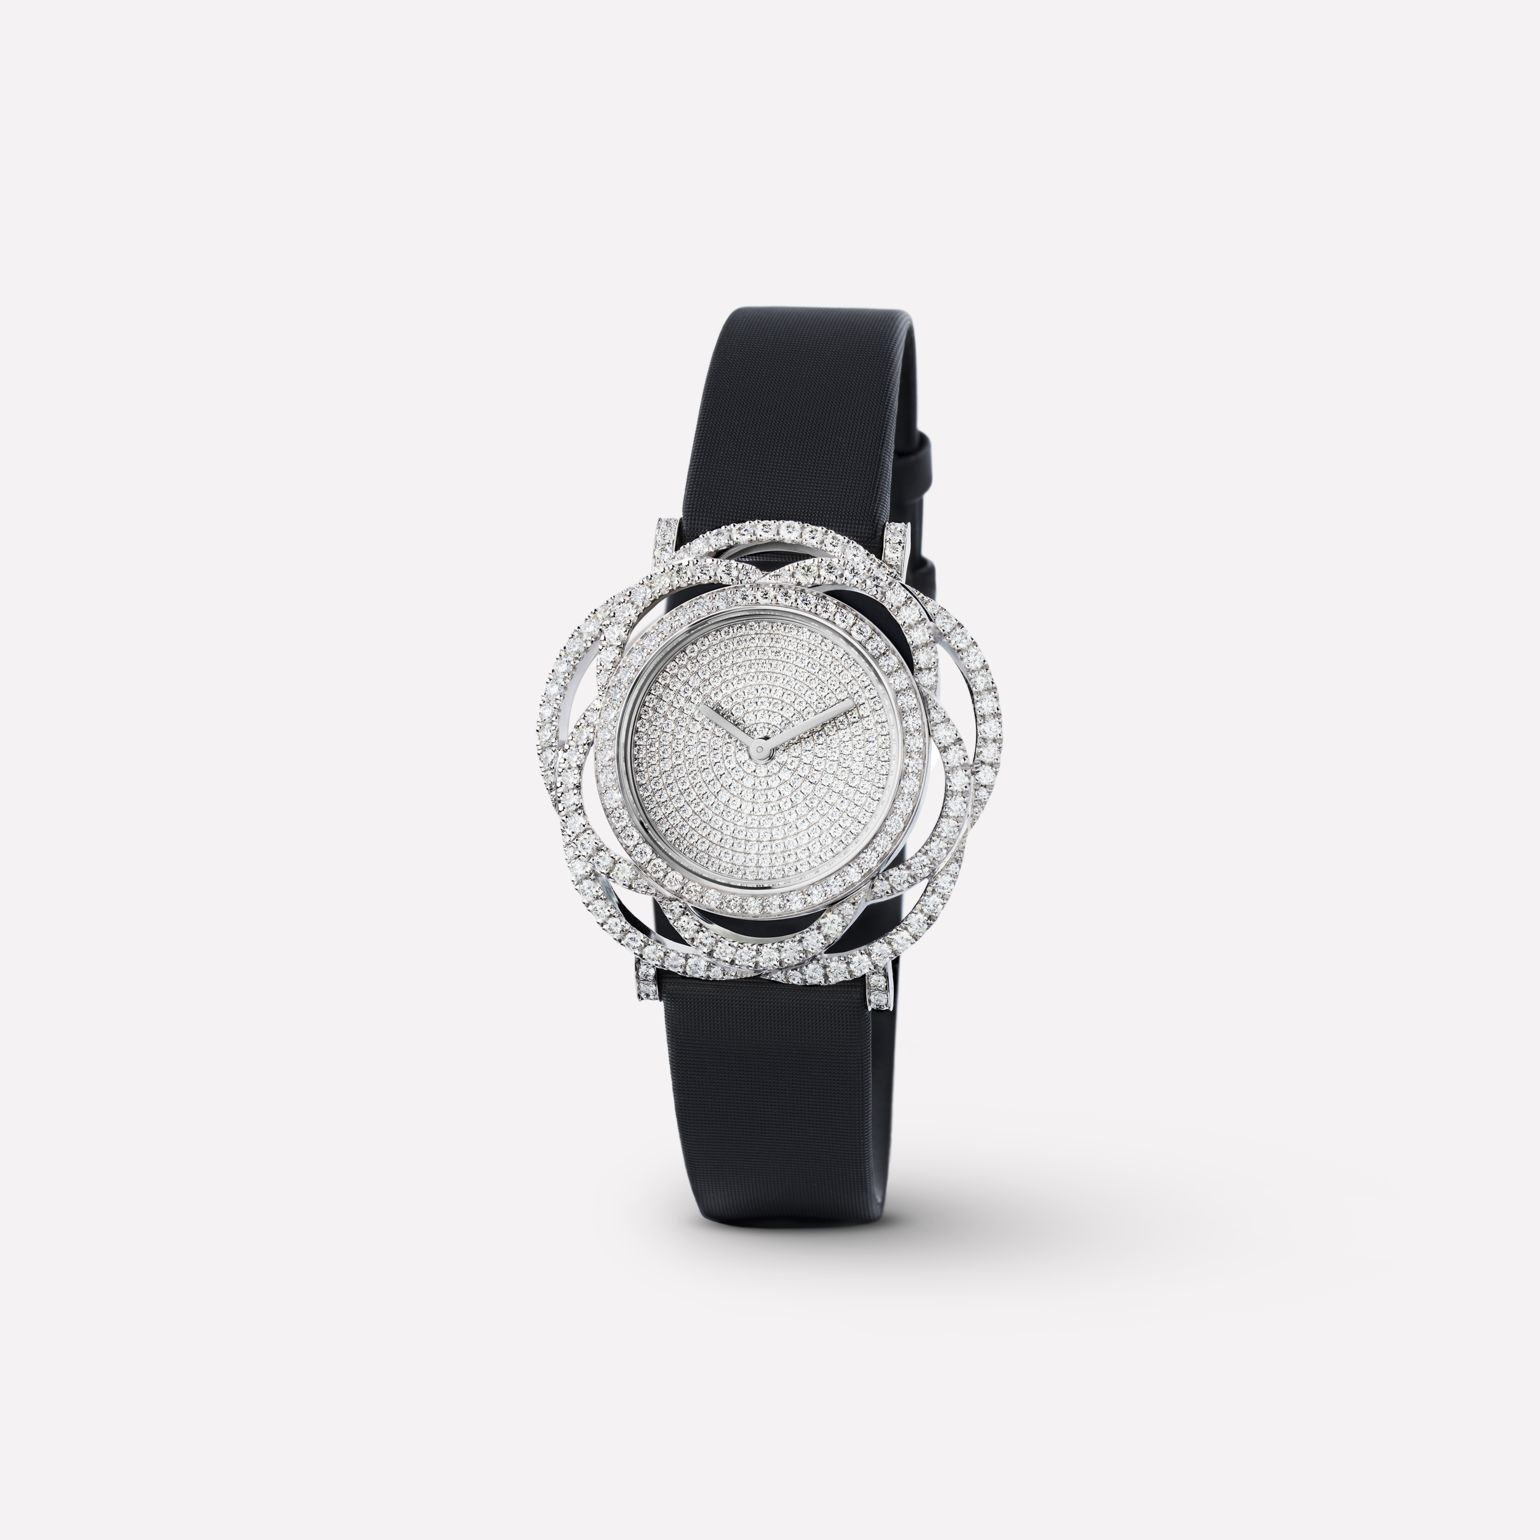 Camélia Jewellery Watch Camélia Brodé motif in 18K white gold and diamonds with paved dial